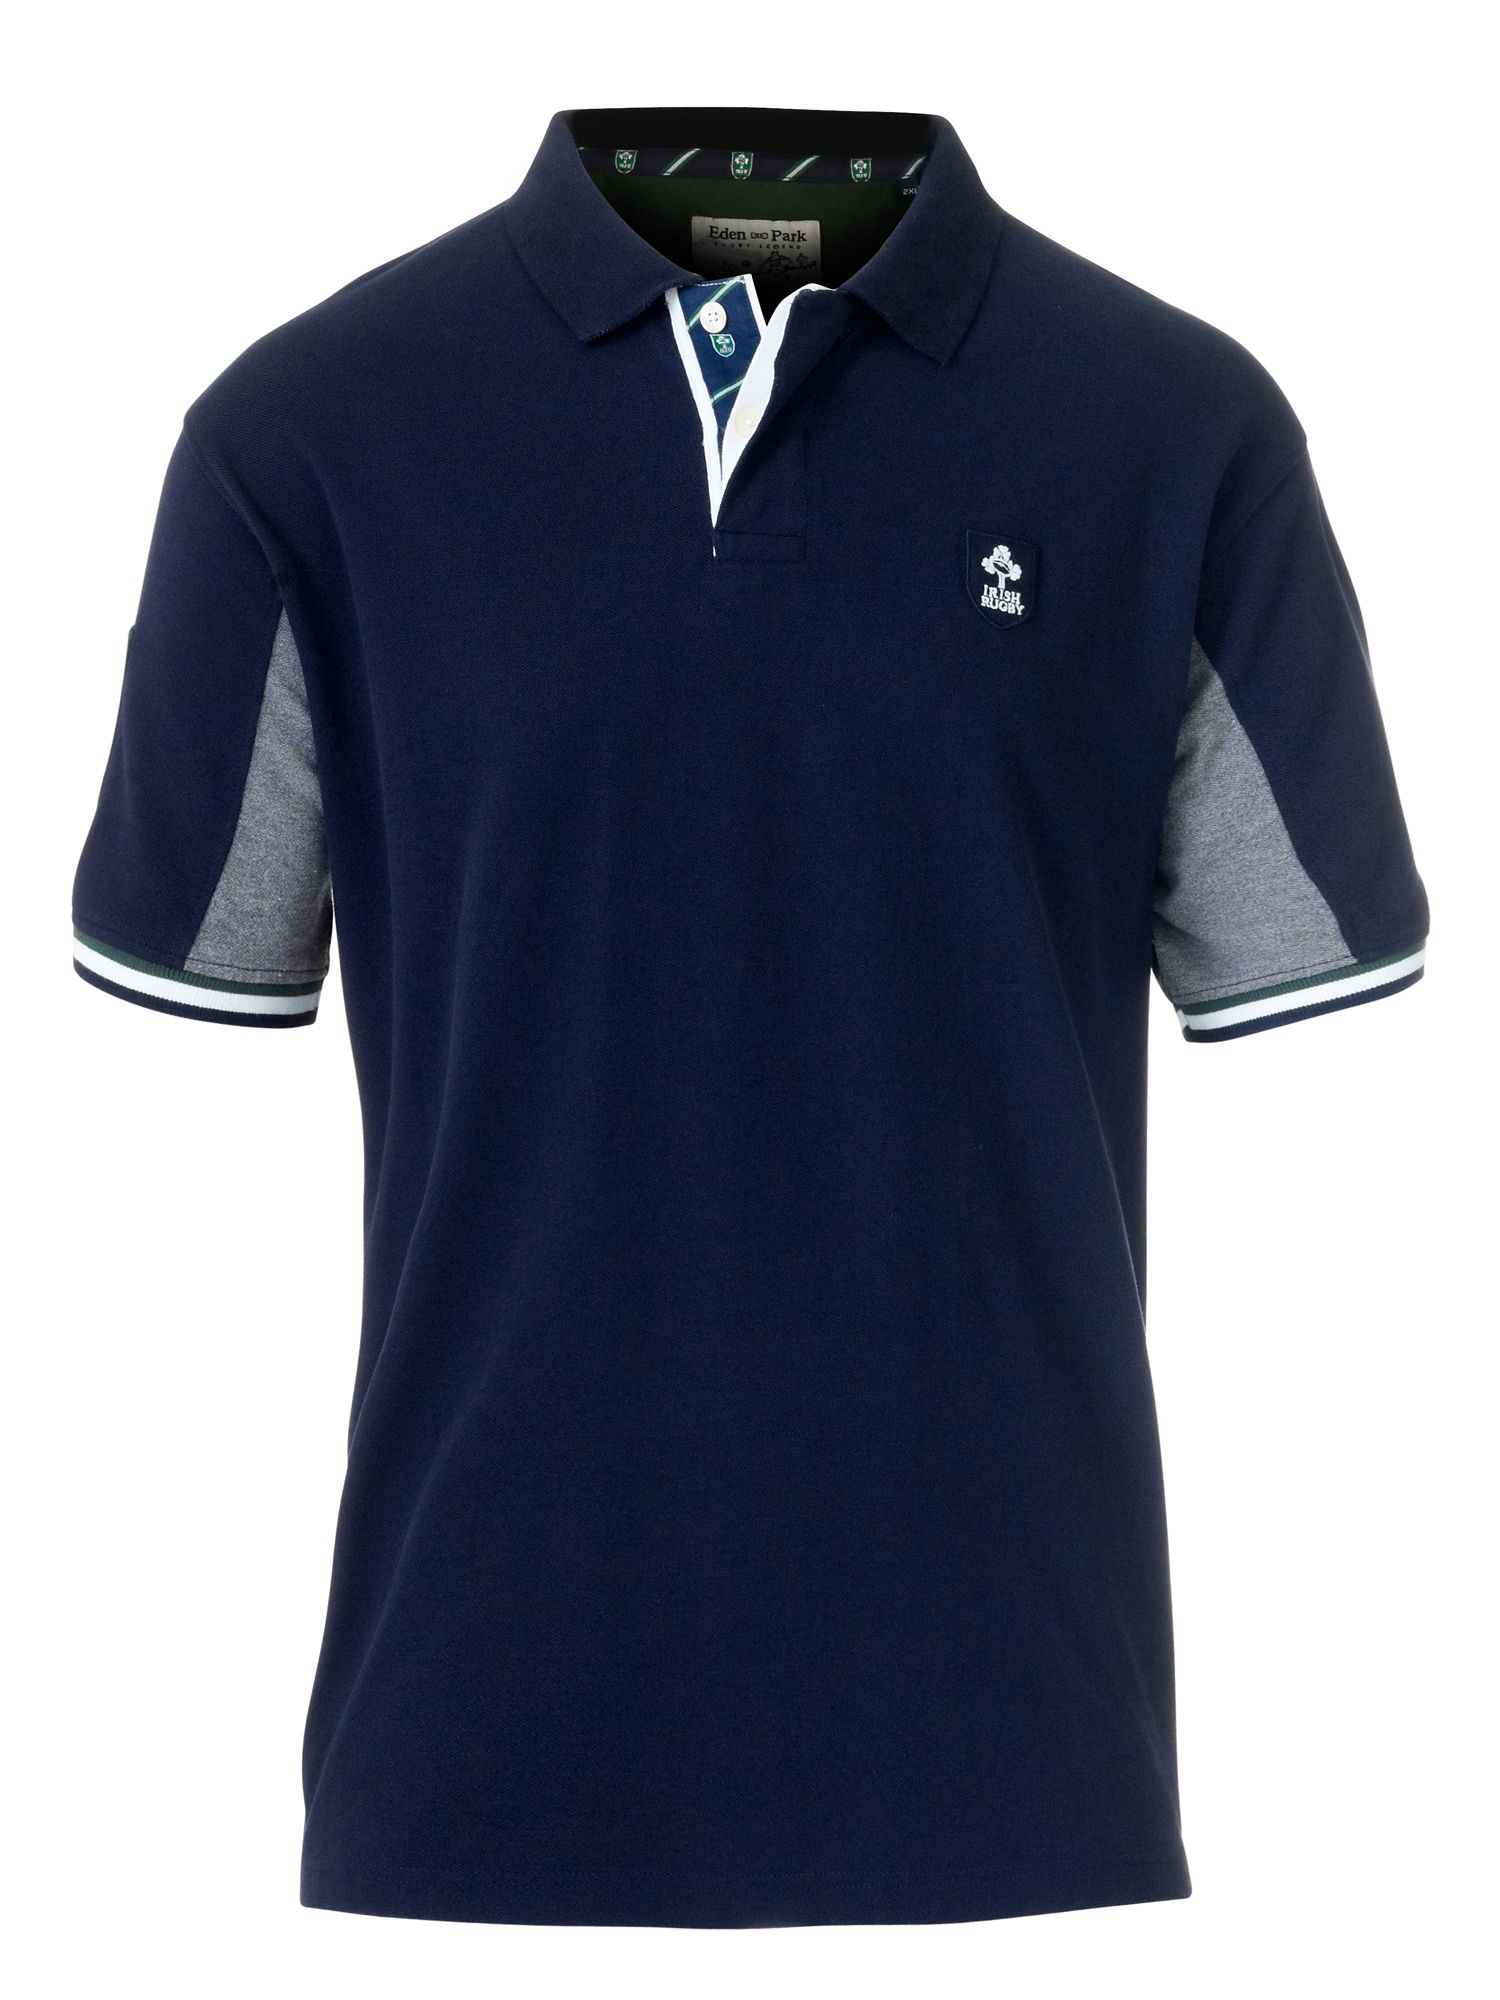 eden park navy color rugby polo t shirt in blue for men lyst